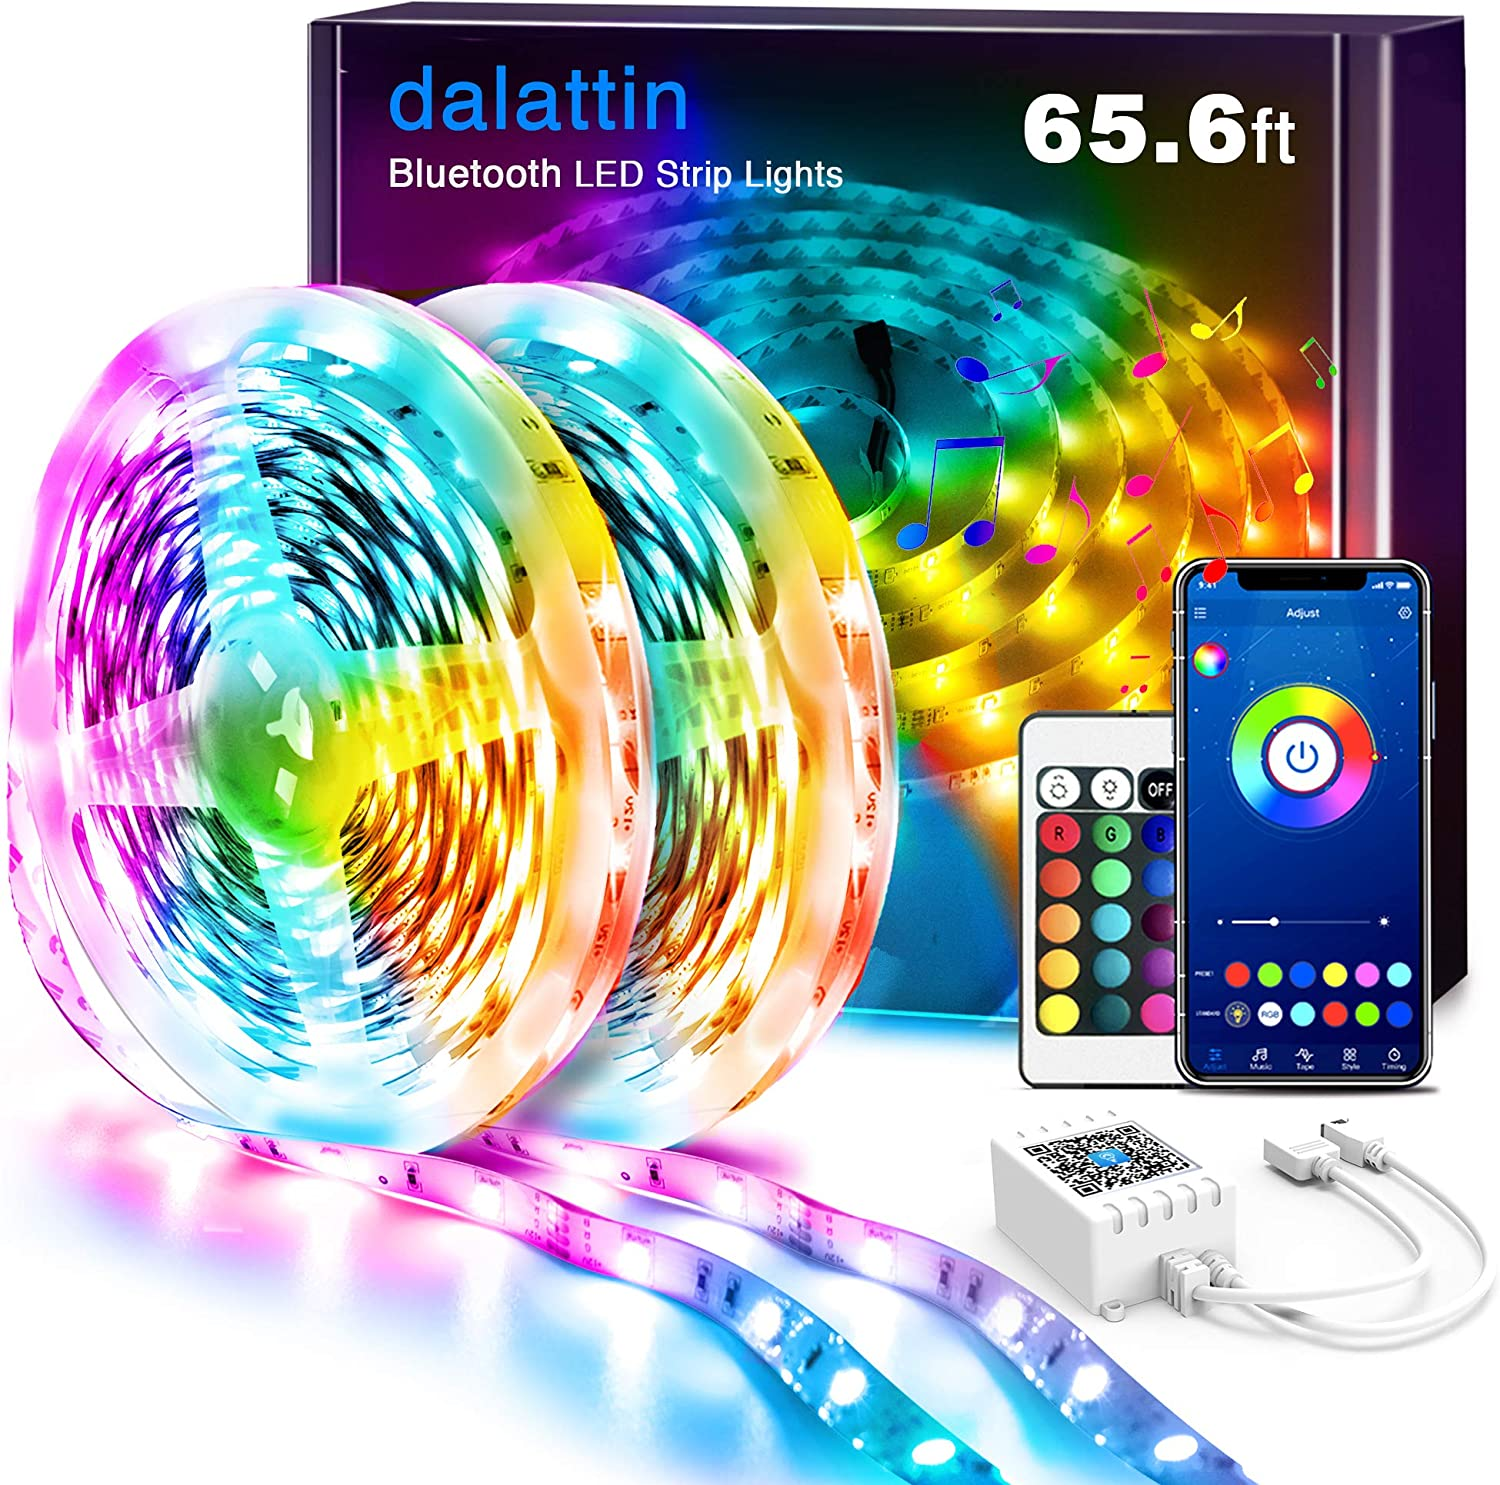 LED Lights for Bedroom Bluetooth 65.6ft Dalattin Smart LED Strip Lights Sync to Music Color Changing Lights 5050 RGB with APP Control,Remote for Room,Kitchen,Party